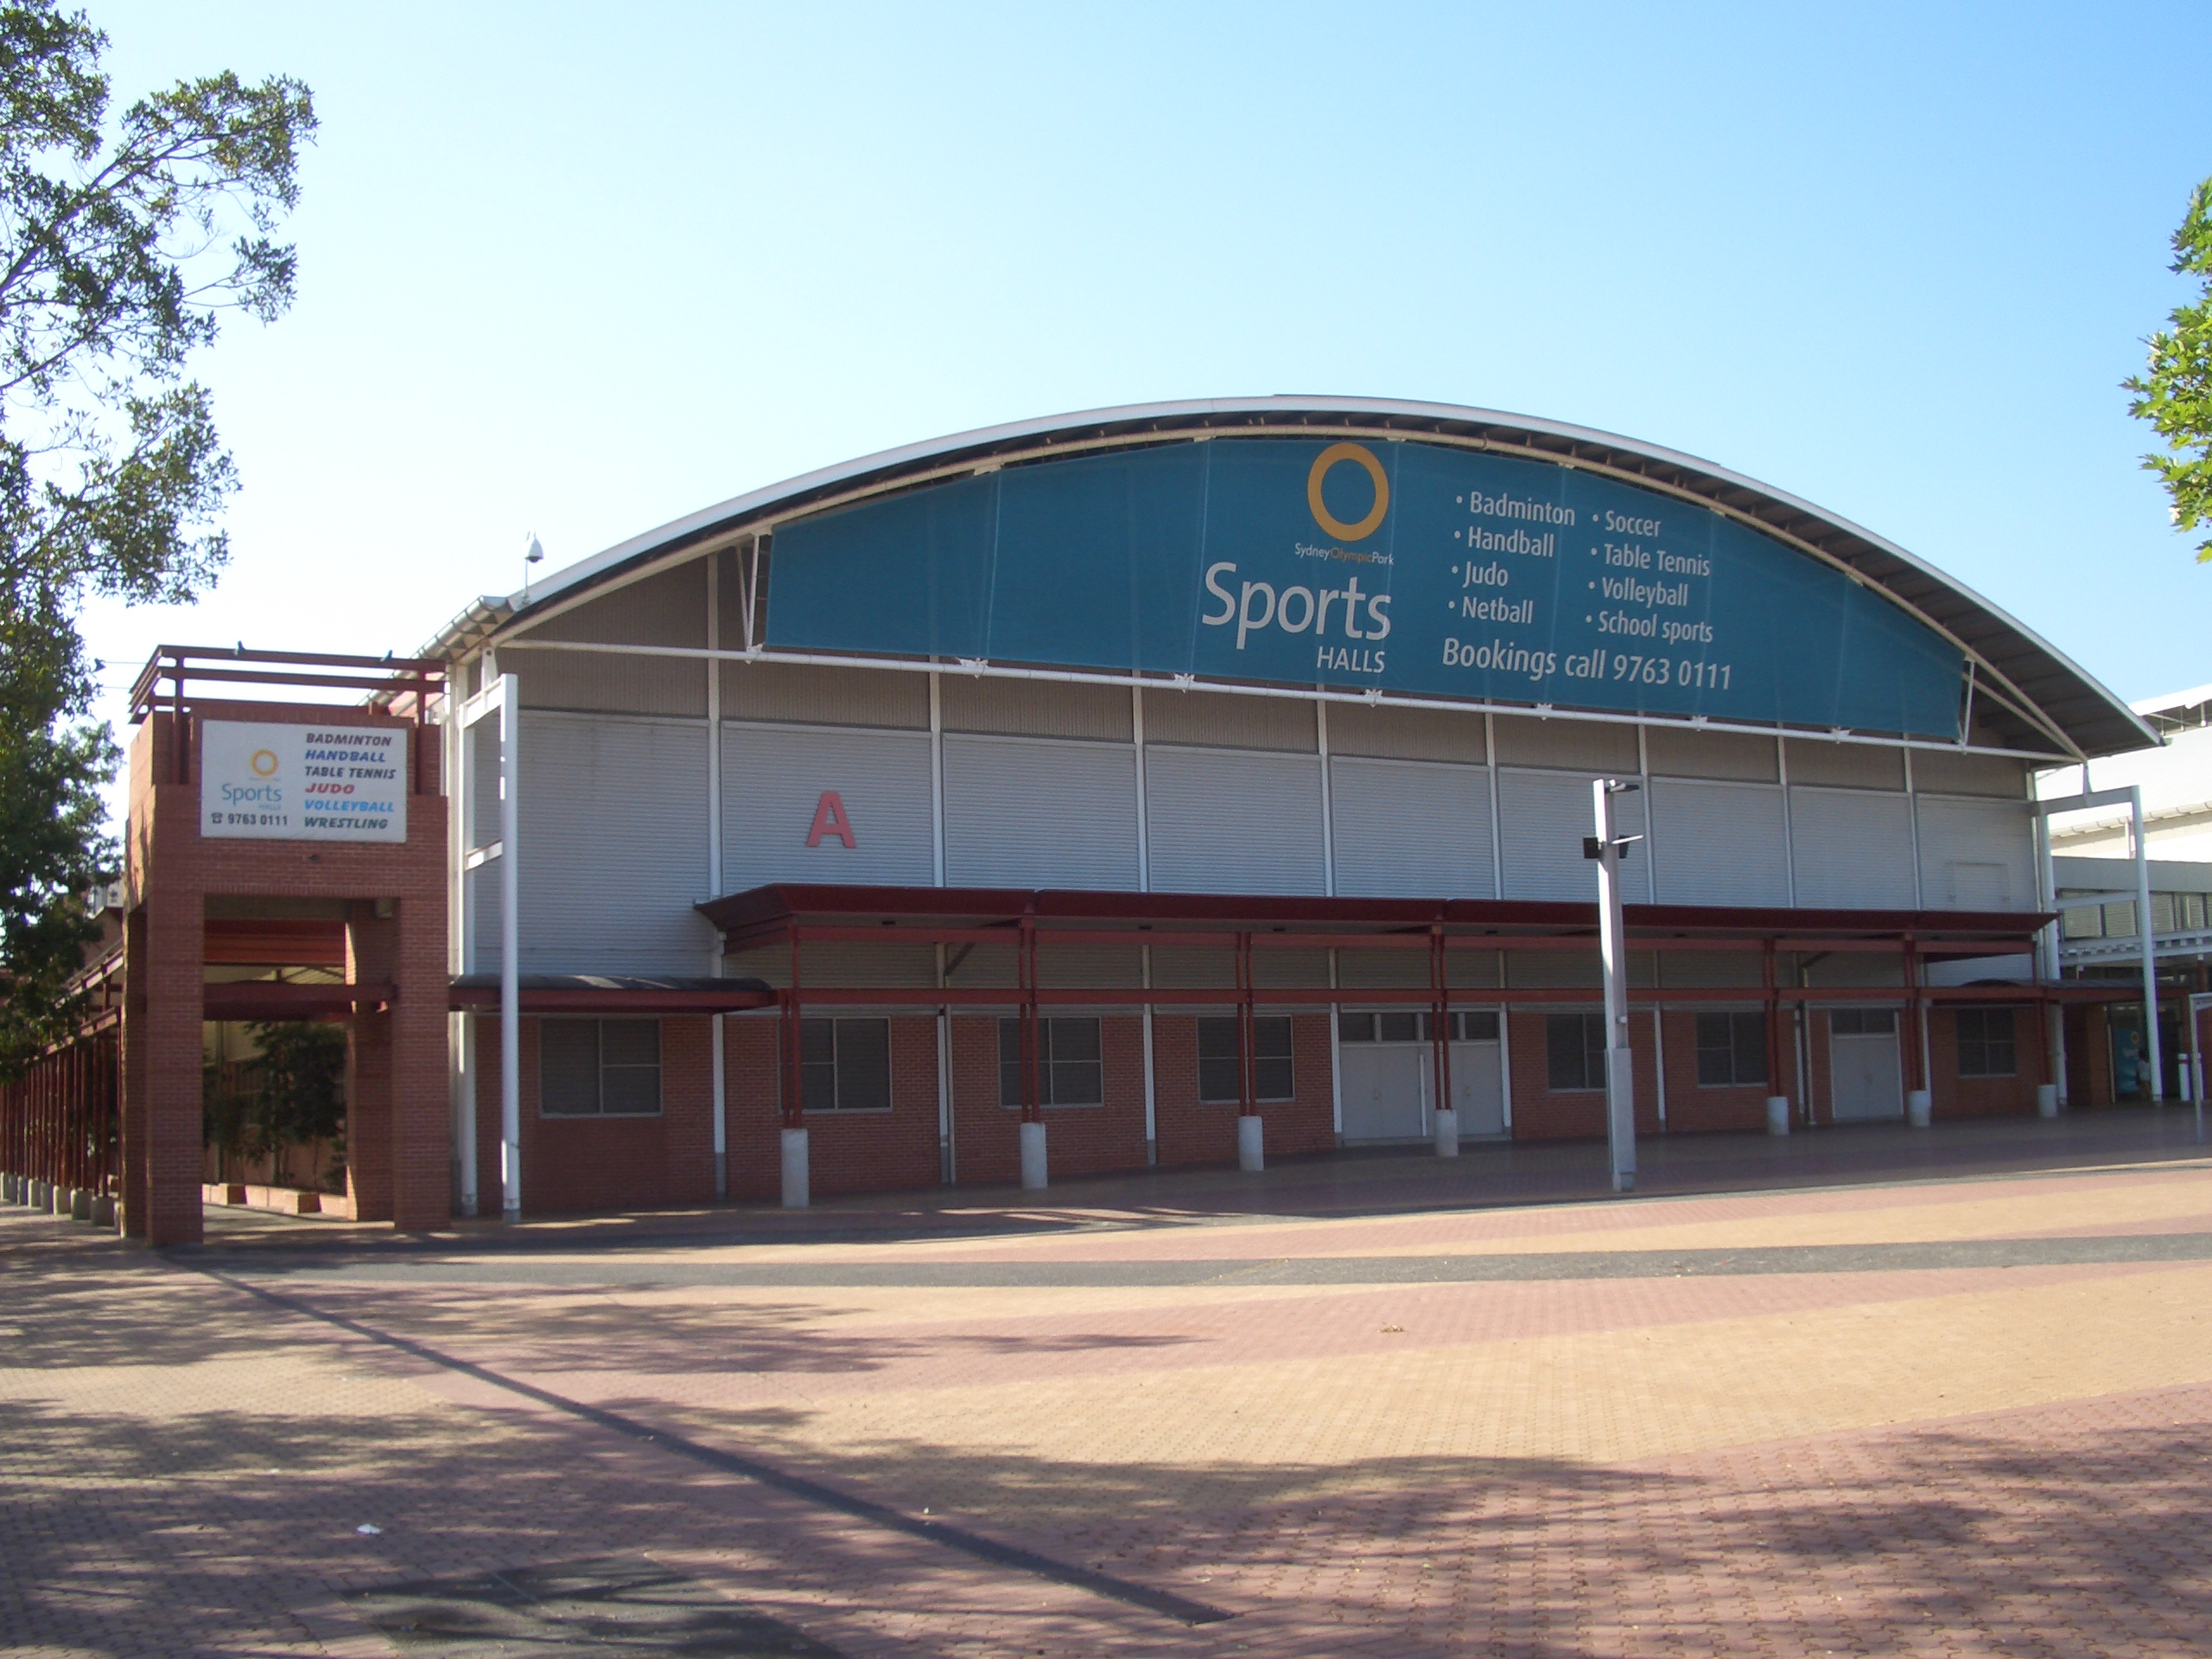 FileSydney Olympic Park Sports Halls 1JPG